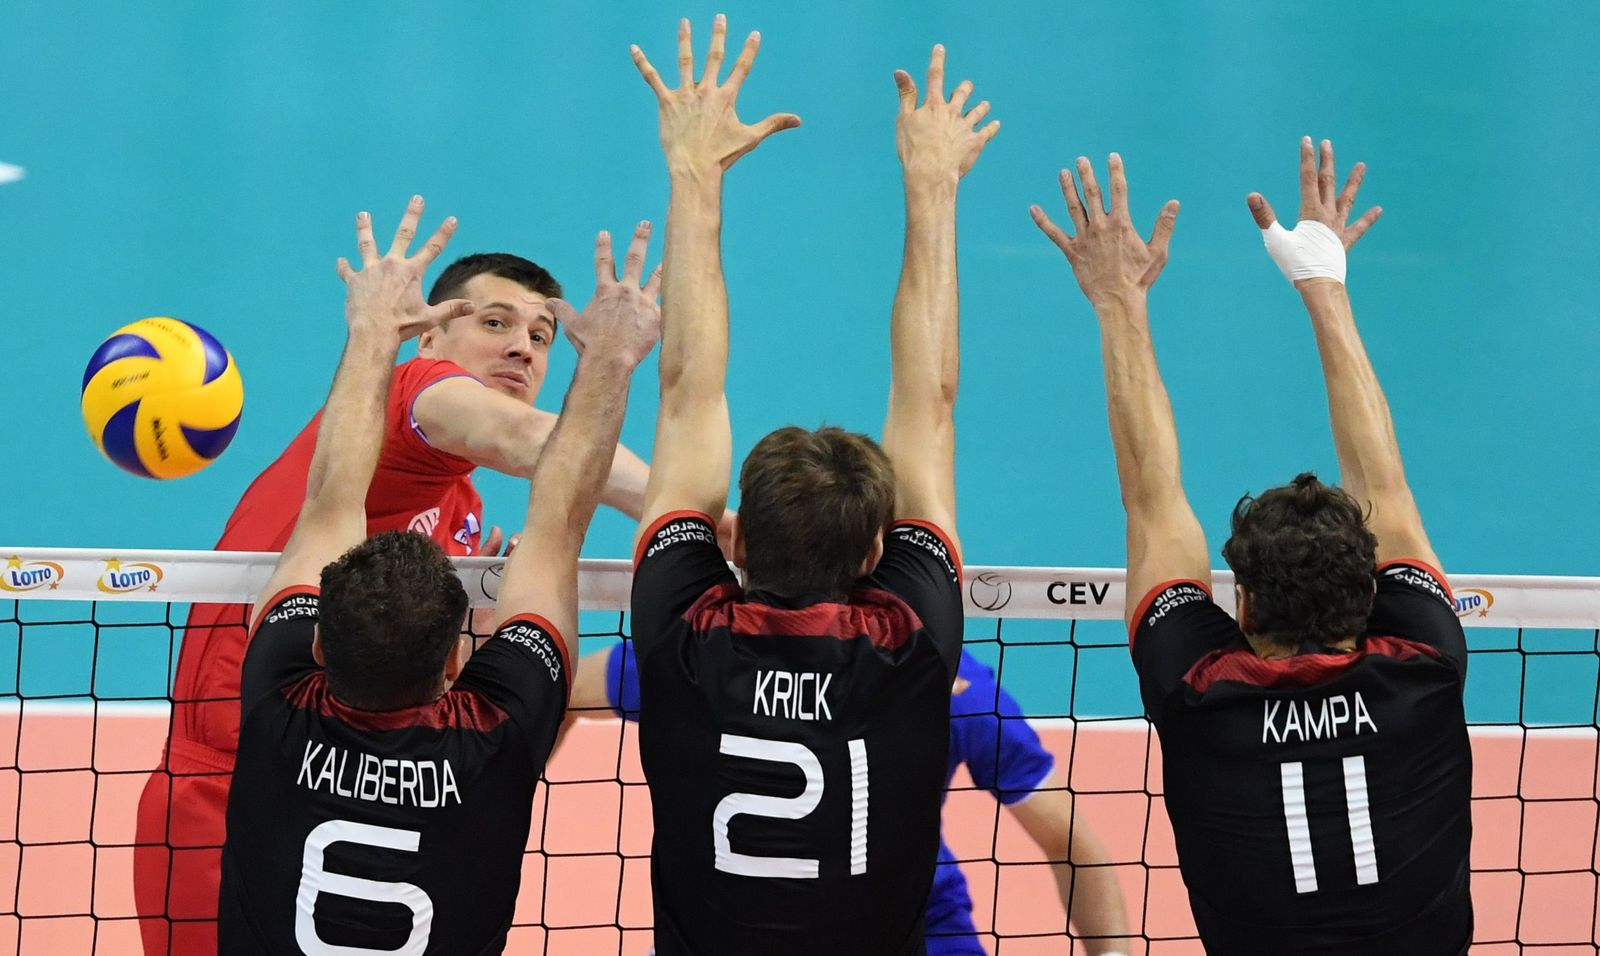 VOLLEYBALL-MENS-EURO-2017-GER-RUS